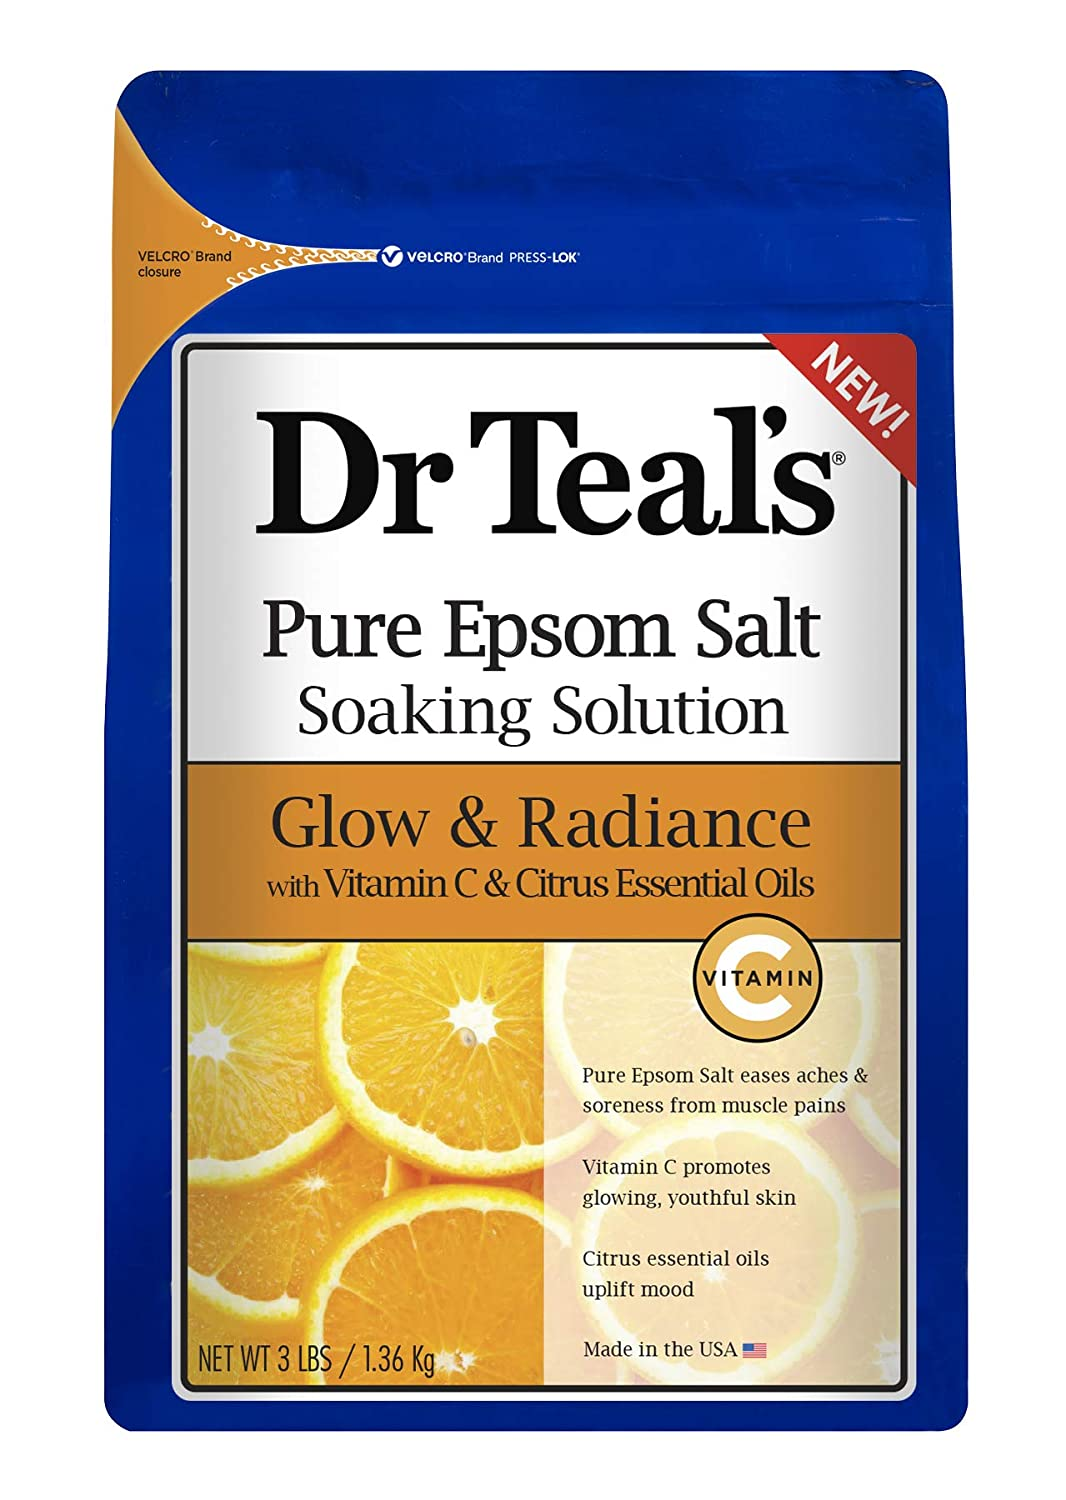 Dr. Teal's Glow & Radiance with Vitamin C & Citrus Essential Oils Pure Epsom Salt Soaking Solution 3lbs Pack of 2